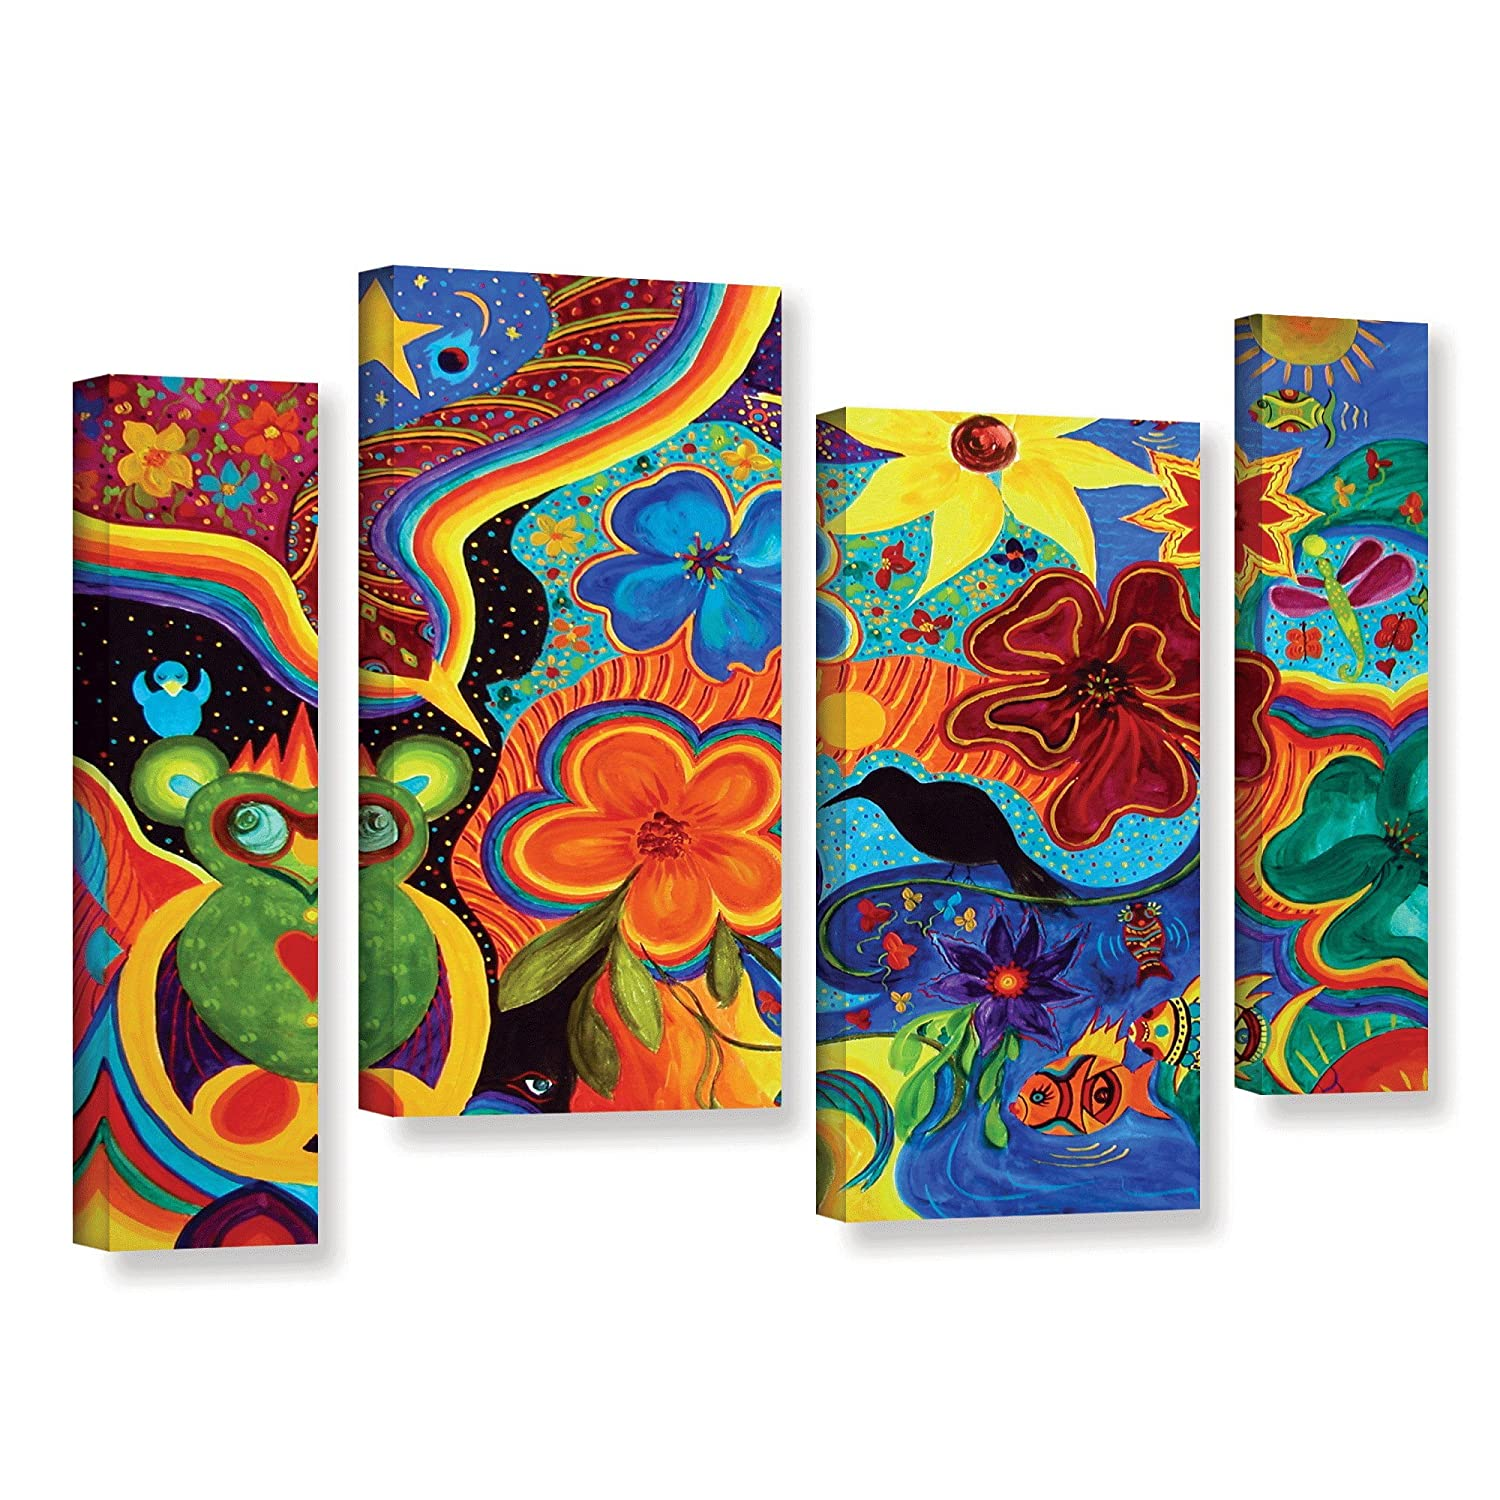 ArtWall Marina Petros Bluebird of Happiness 4 Piece Gallery-Wrapped Canvas Staggered Set 24 by 36